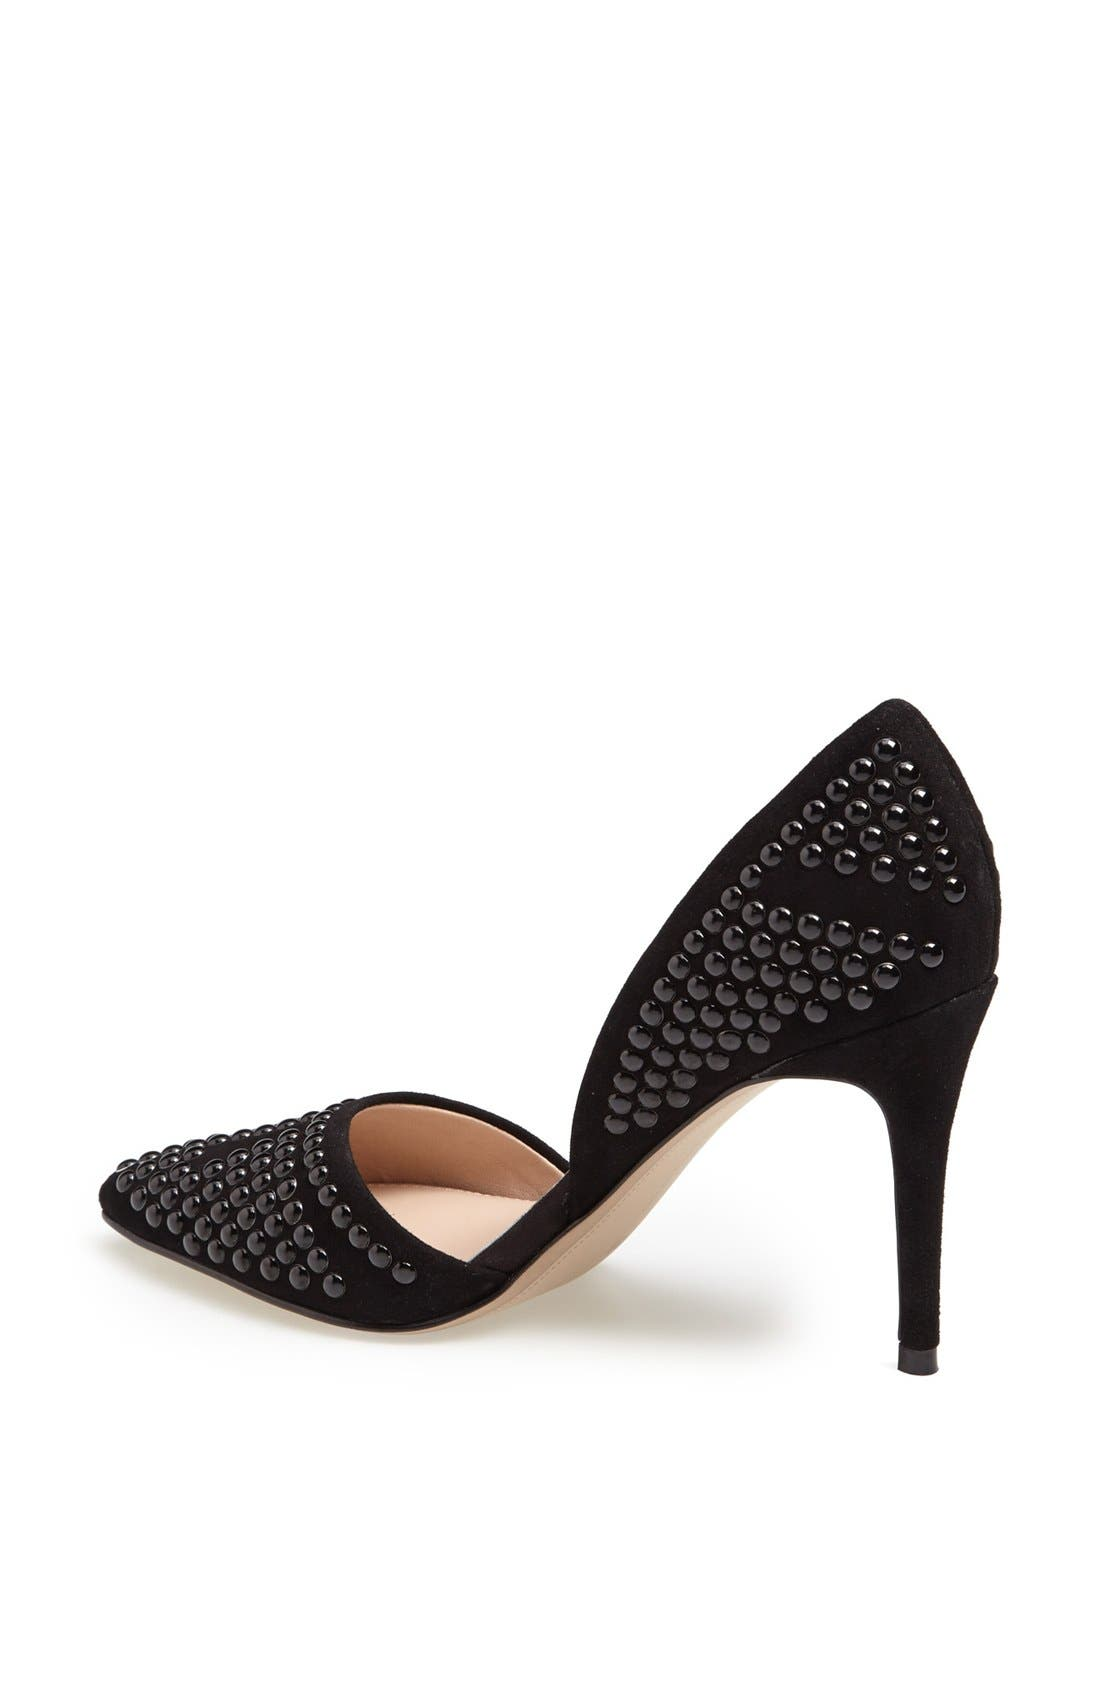 'Ellis' Studded Nubuck d'Orsay Pump,                             Alternate thumbnail 3, color,                             001